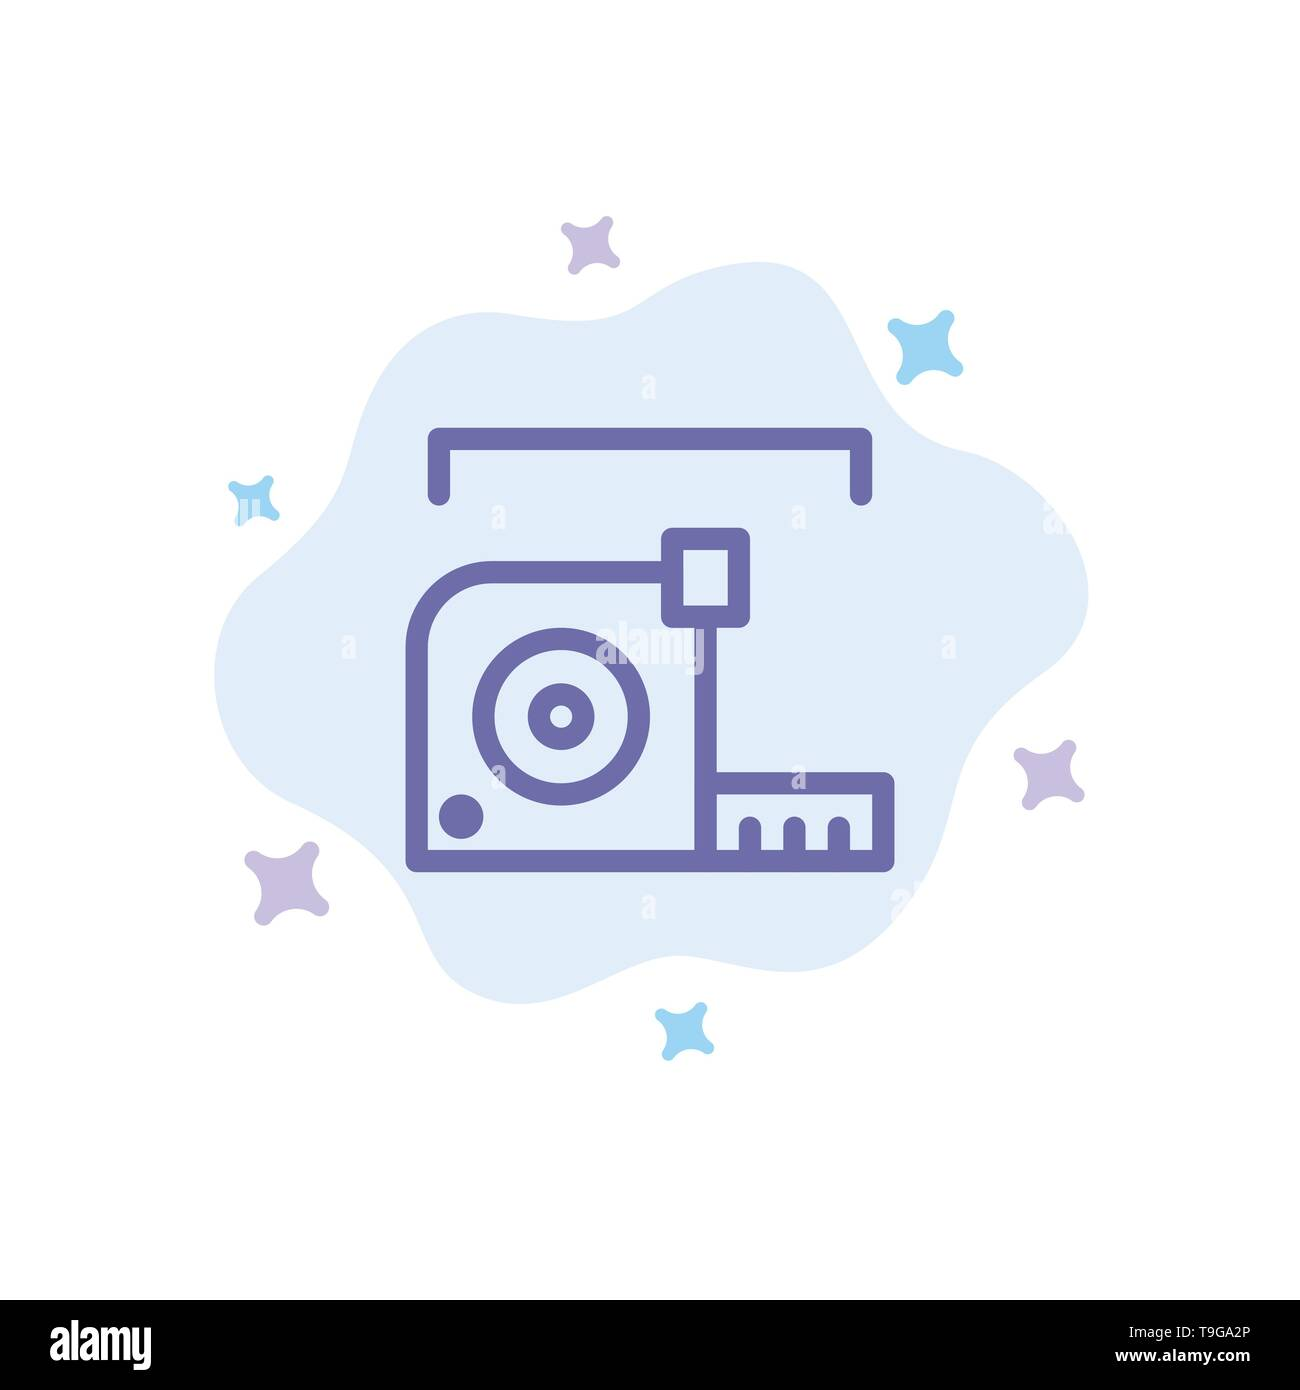 Measure, Measurement, Meter, Roulette, Ruler Blue Icon on Abstract Cloud Background - Stock Image